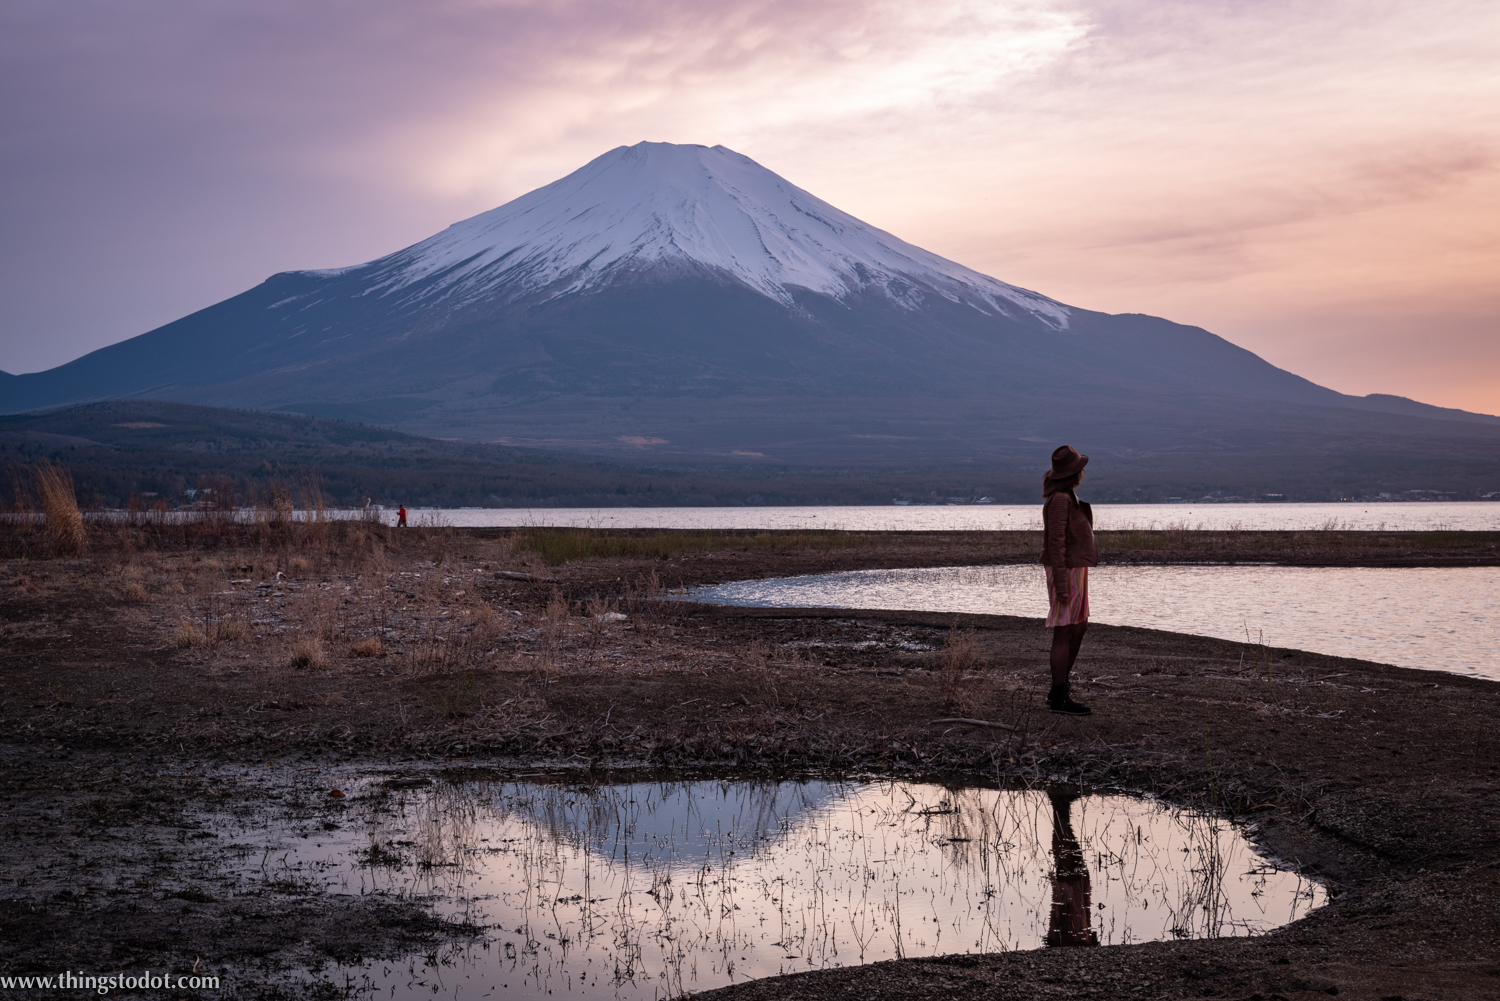 Mt. Fuji, Lake Yamanaka, Fuji, Japan. Image©www.thingstodot.com.